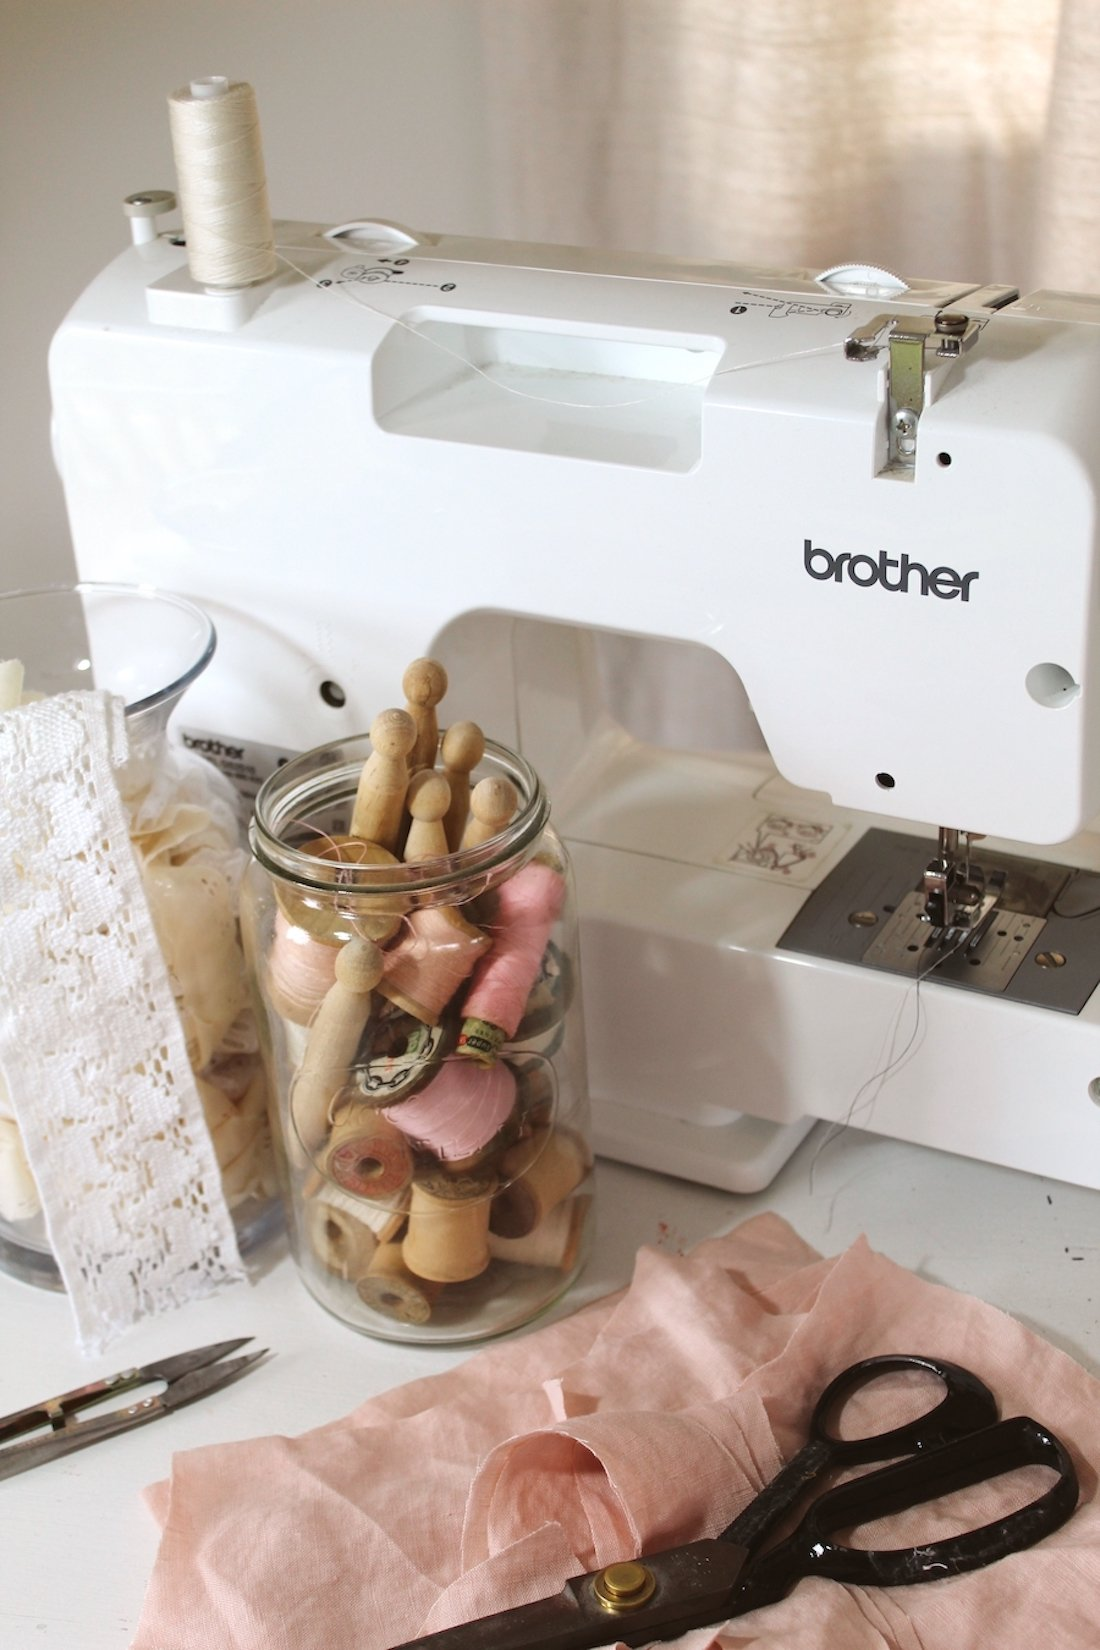 How To Thread A Sewing Machine | Step by Step